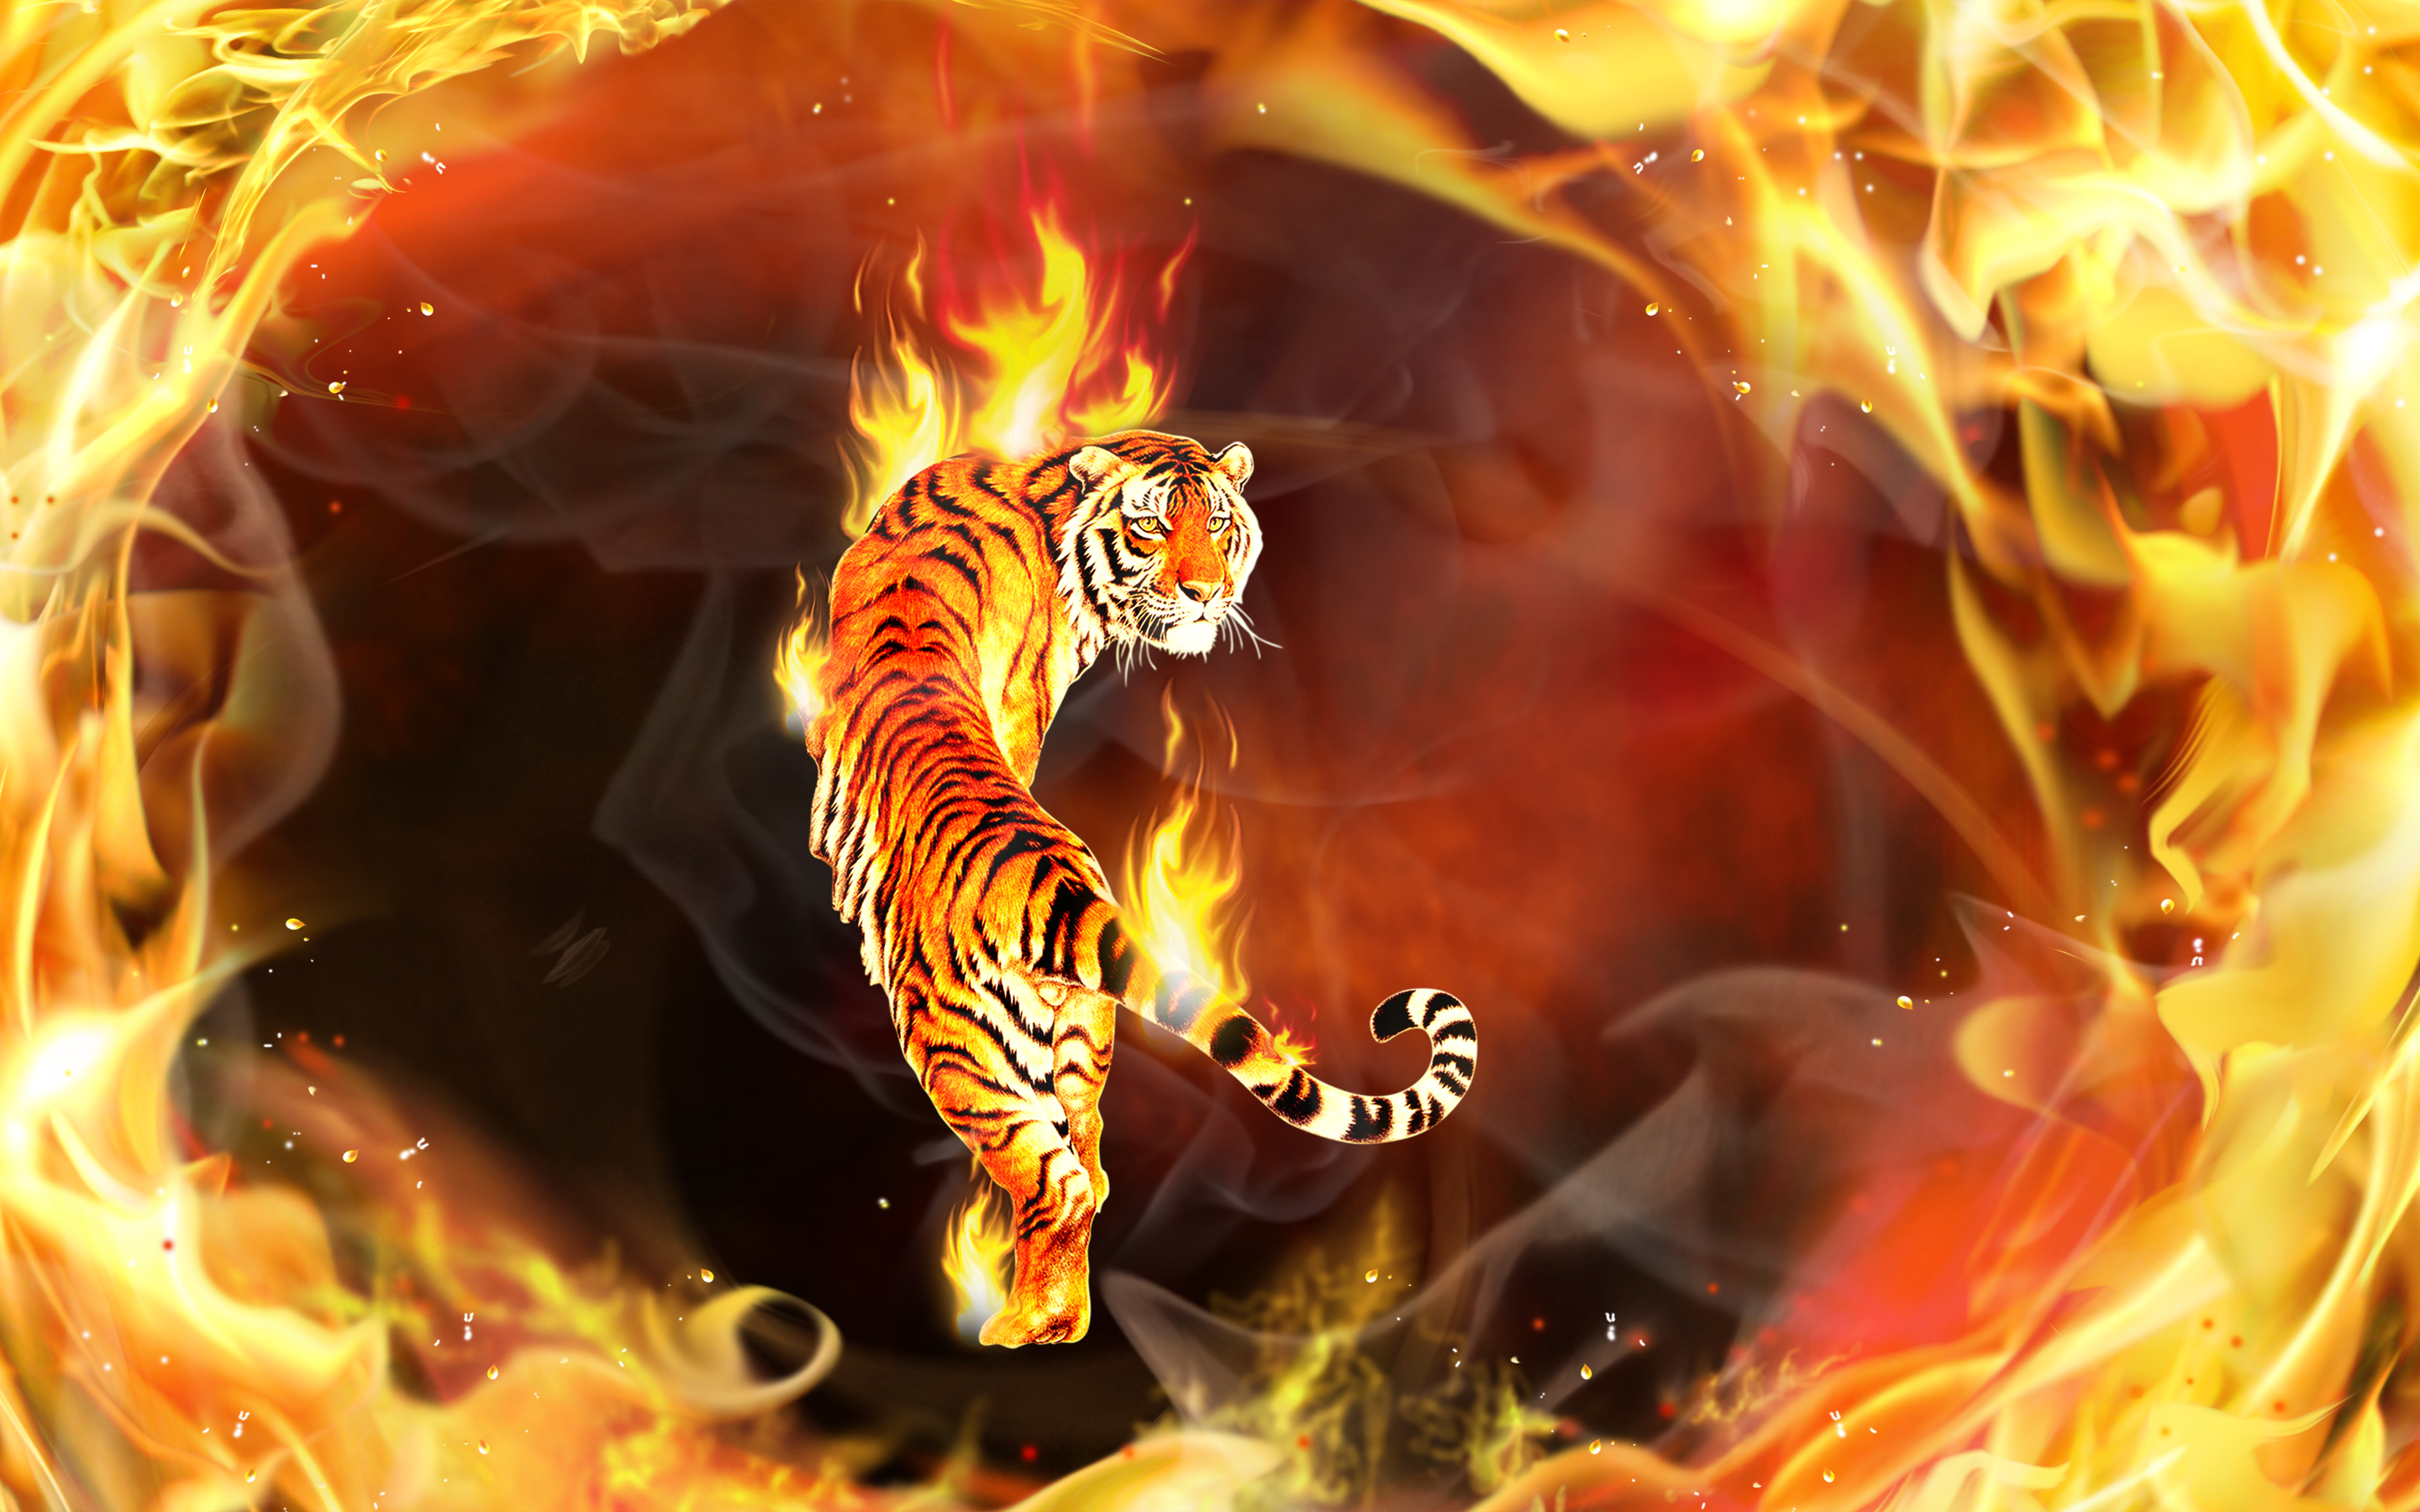 Delightful Fantasy   Tiger CGI Digital Art 3D Psychedelic Fire Flame Abstract Wallpaper